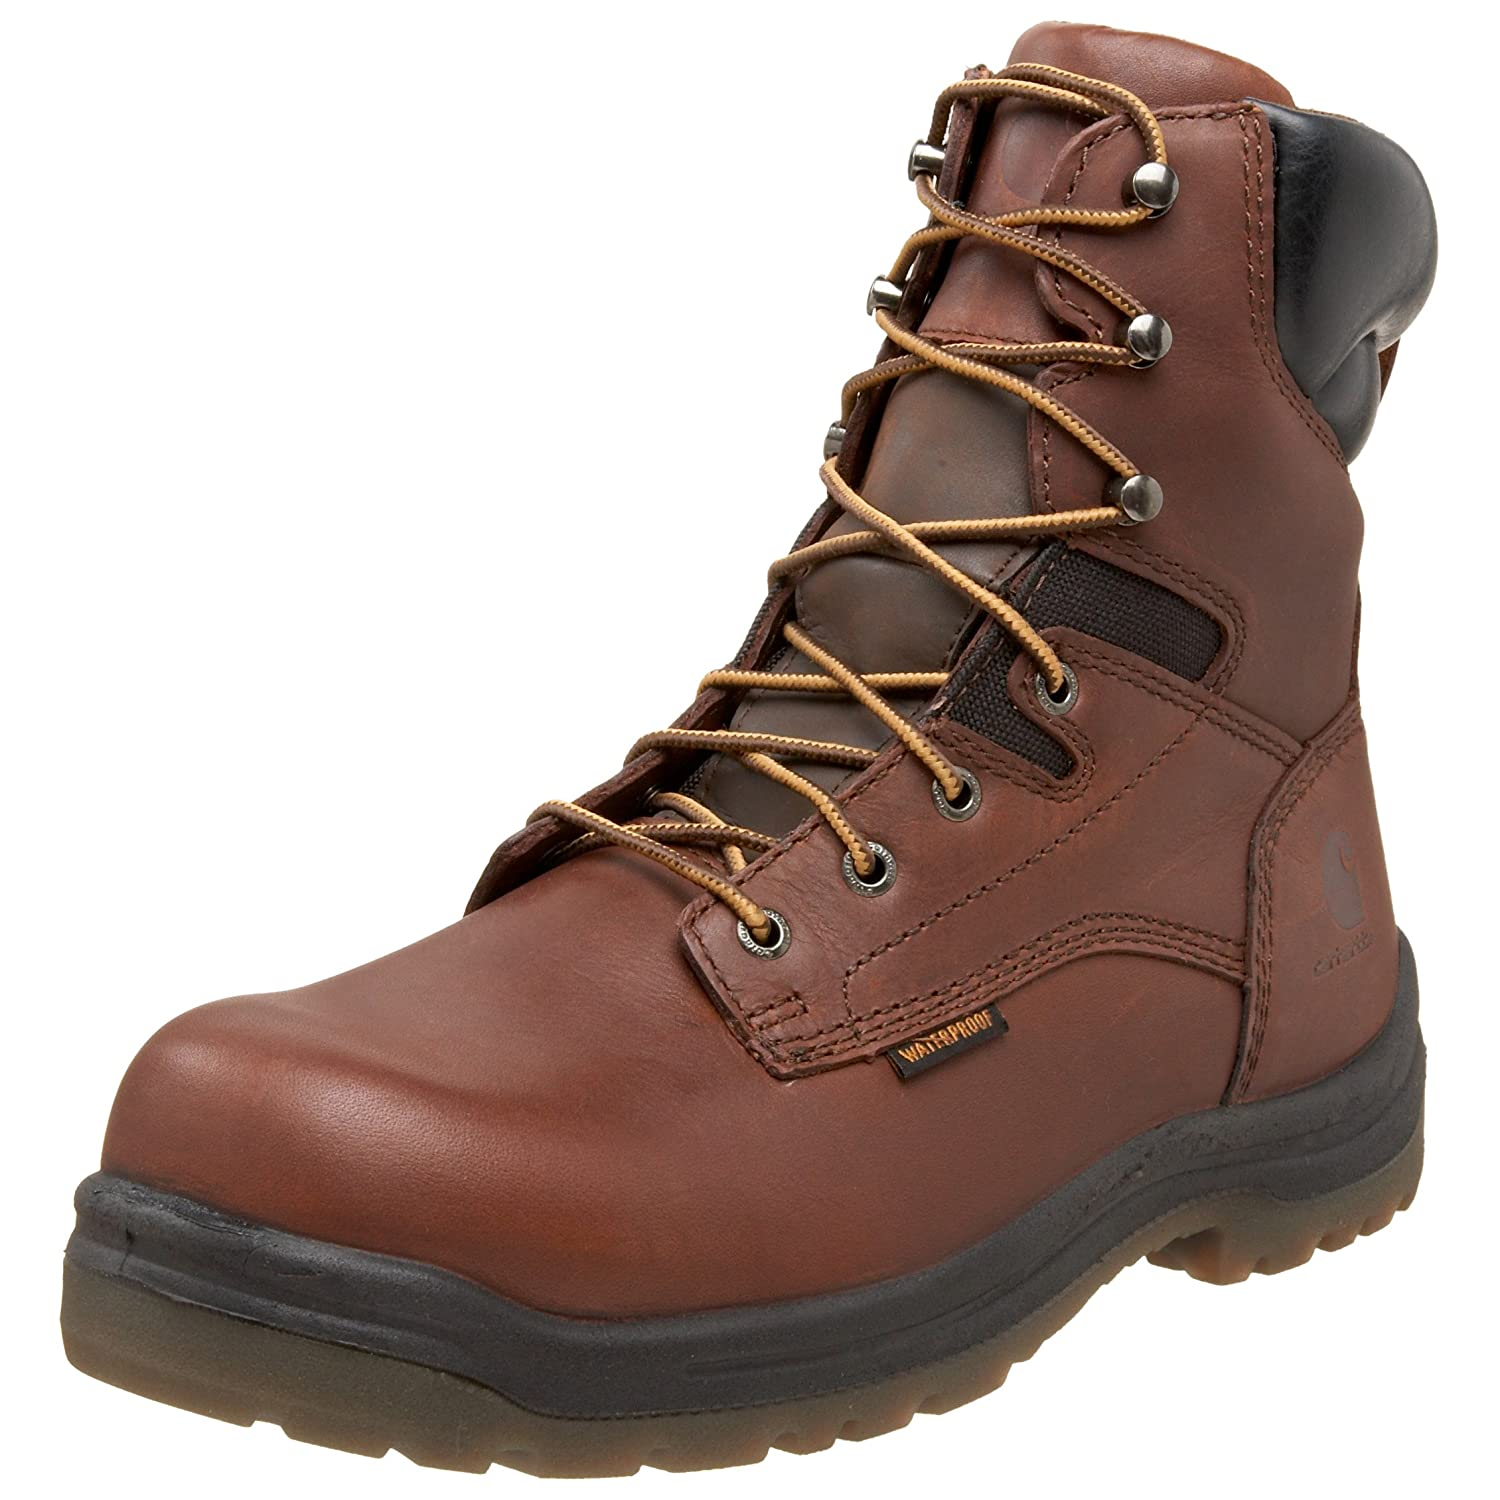 Waterproof Insulated Safety Toe